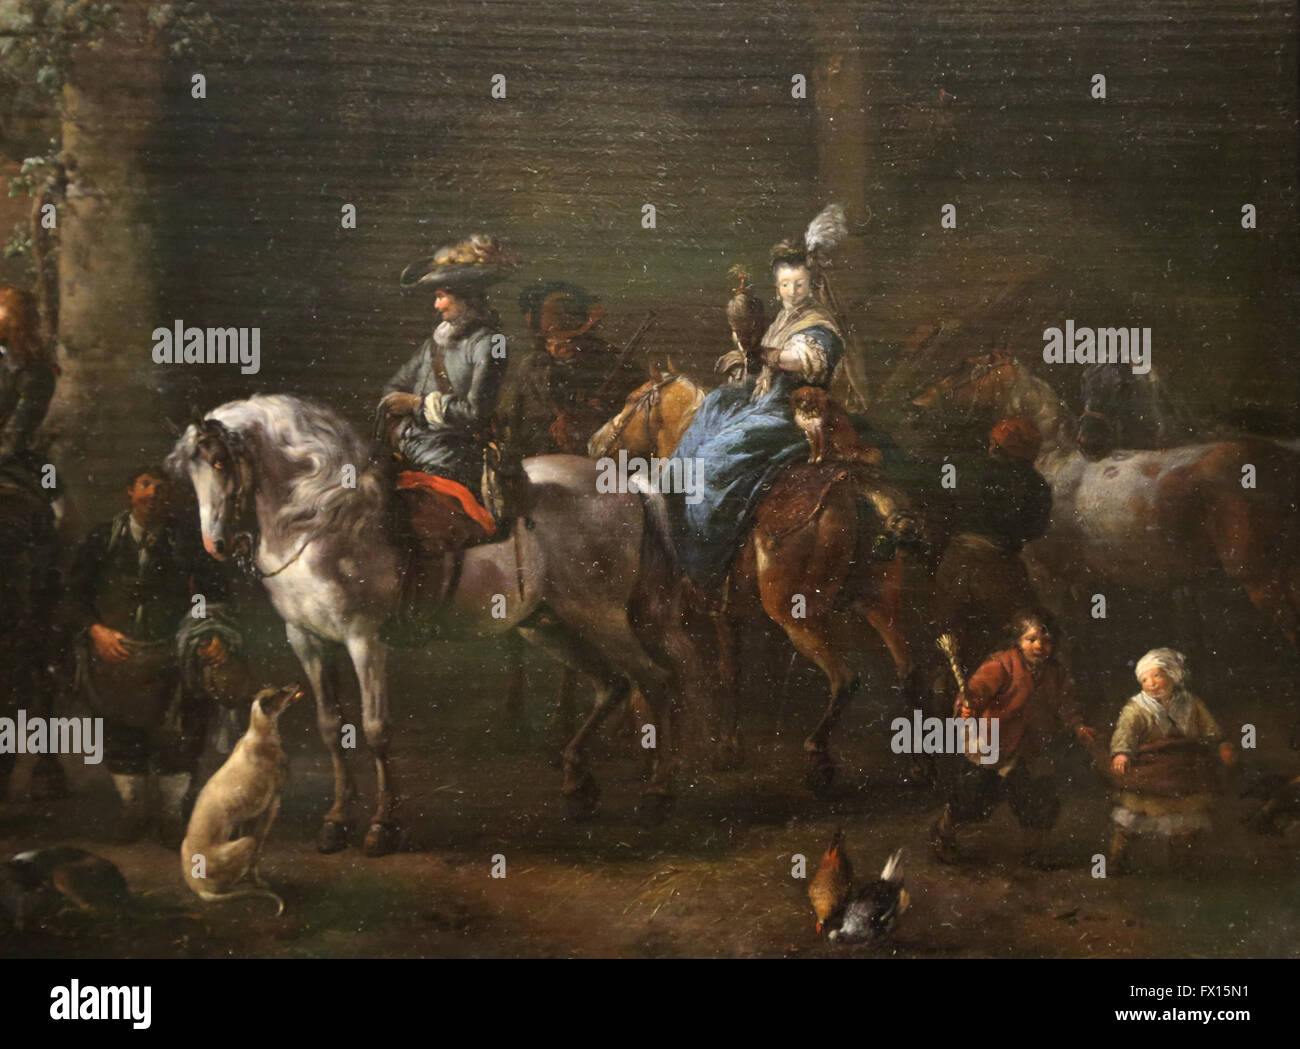 Philips Wouwerman (1619-1668). Dutch painter. The Departure for falconry. Louvre Museum. Paris. France. - Stock Image